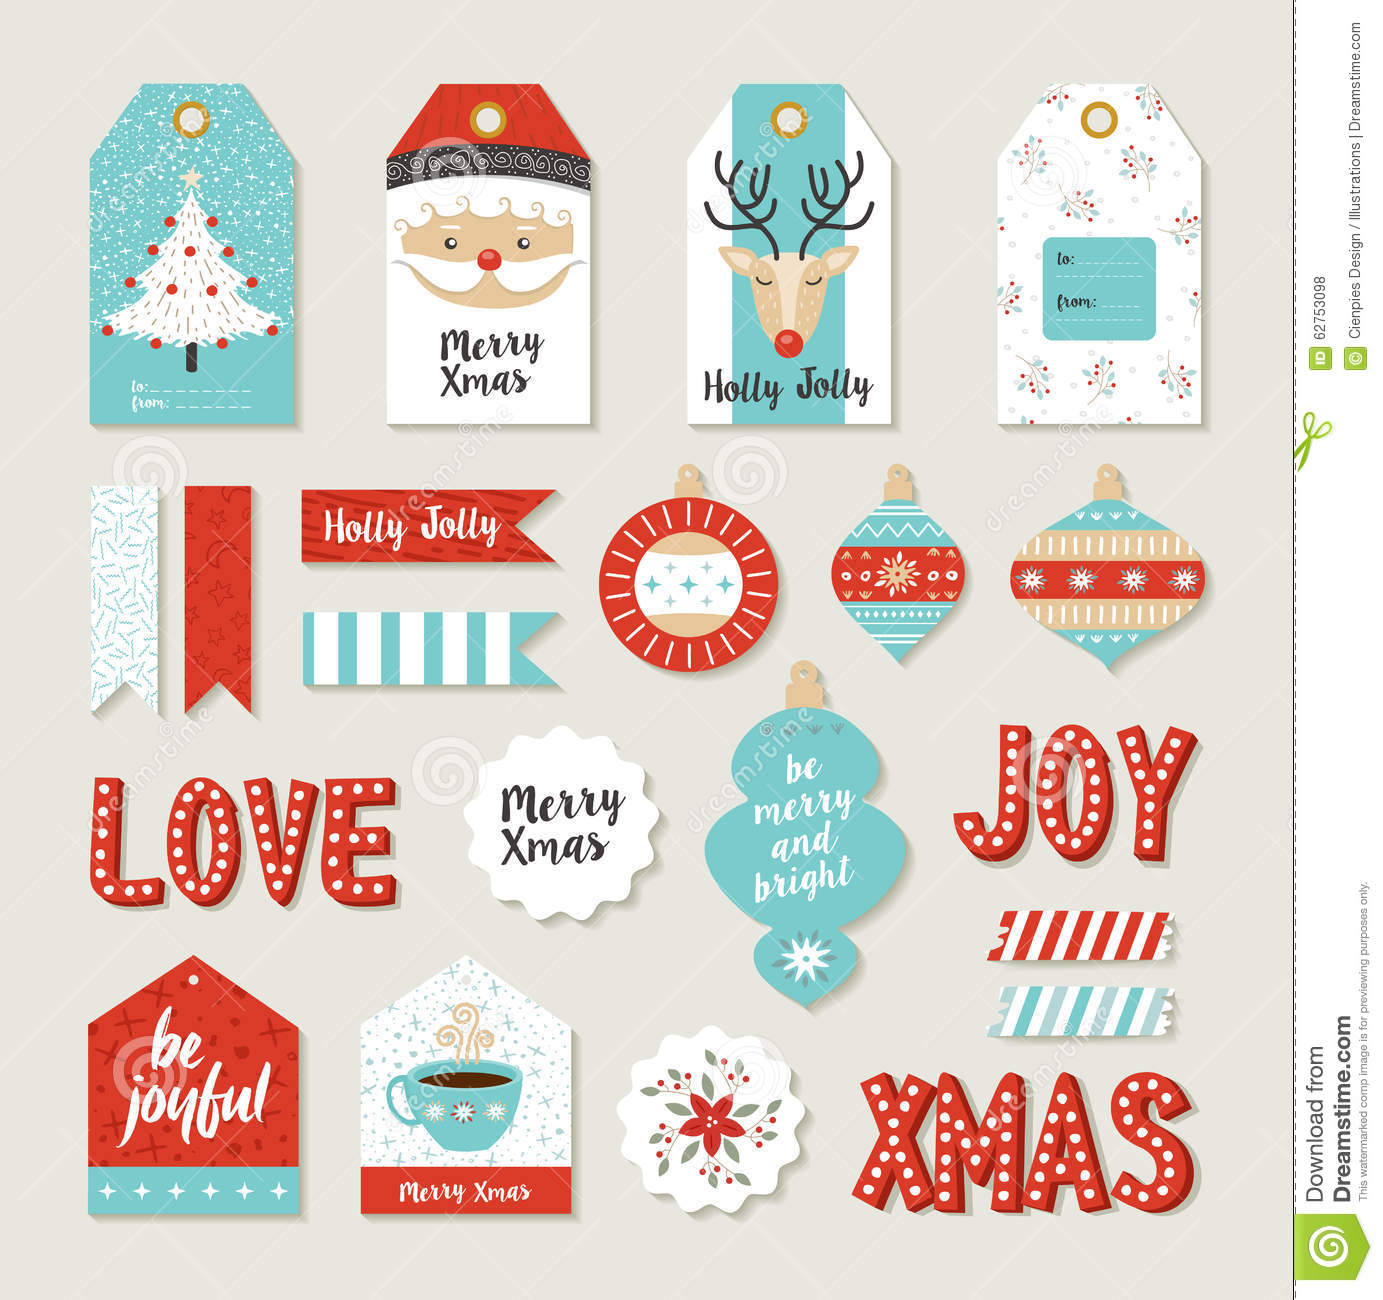 photograph relating to Merry Christmas Tags Printable known as Merry Xmas Fixed Sbook Do-it-yourself Printable Tags Inventory